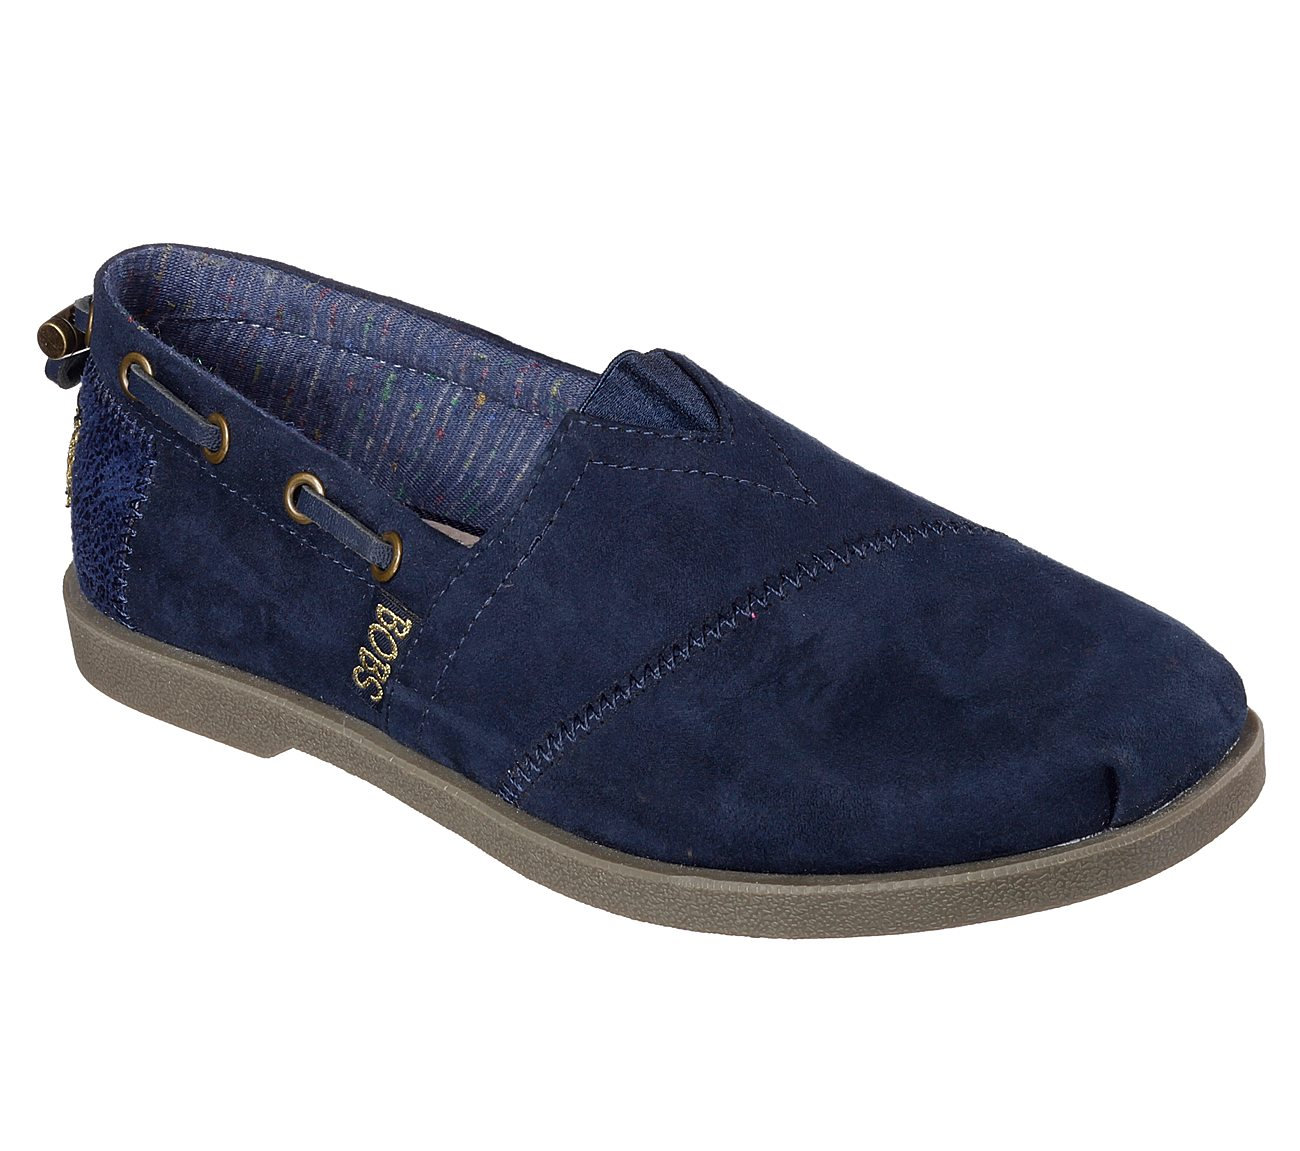 BOBS Chill Luxe - Endless Chill. $53.00. Hover to zoom. Navy